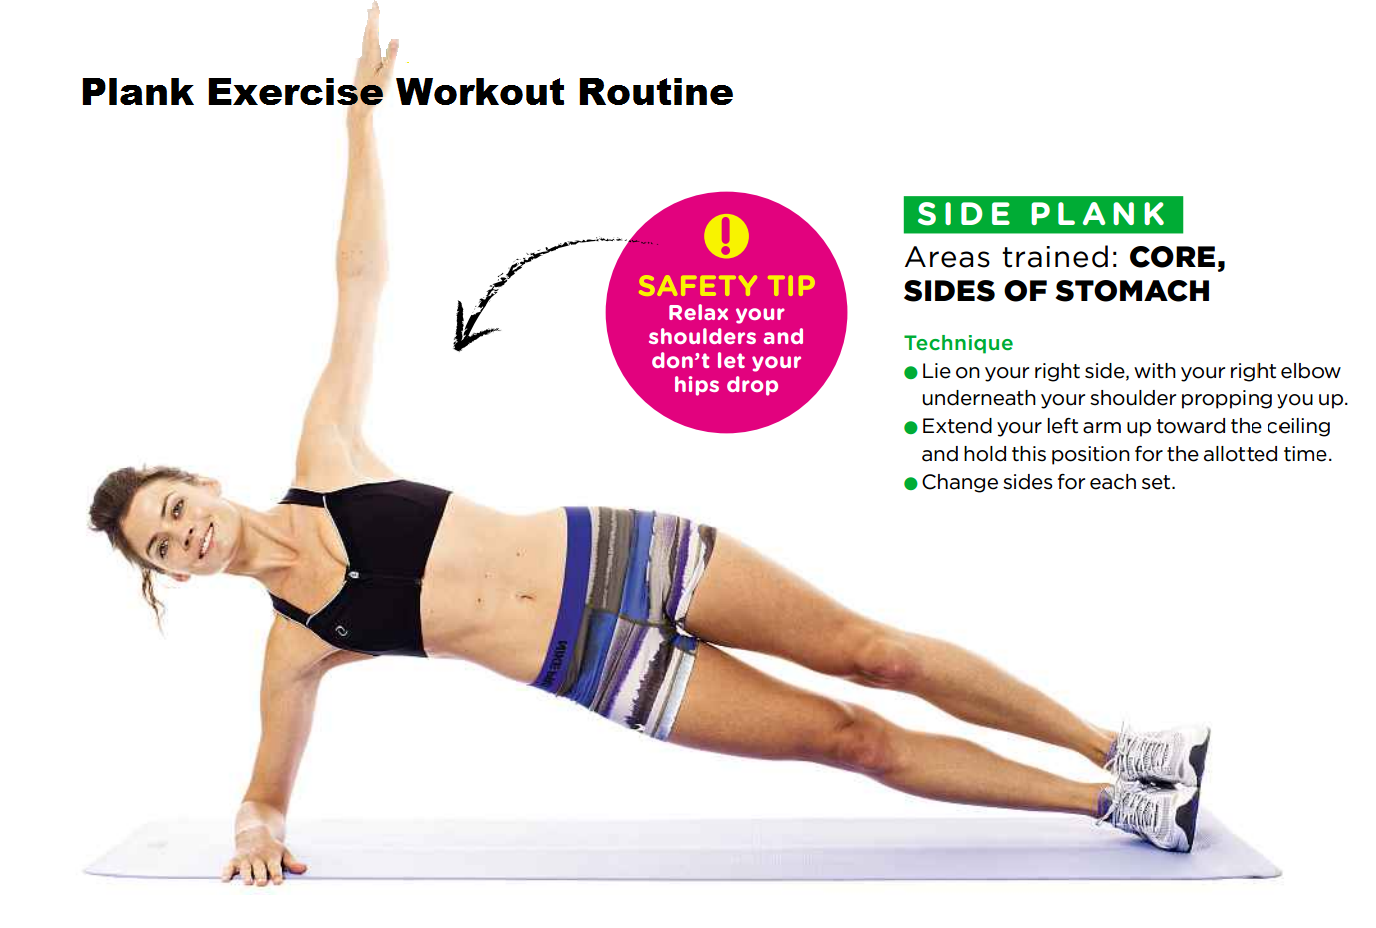 planking exercise routines | The Side Plank Exercise For Women ...